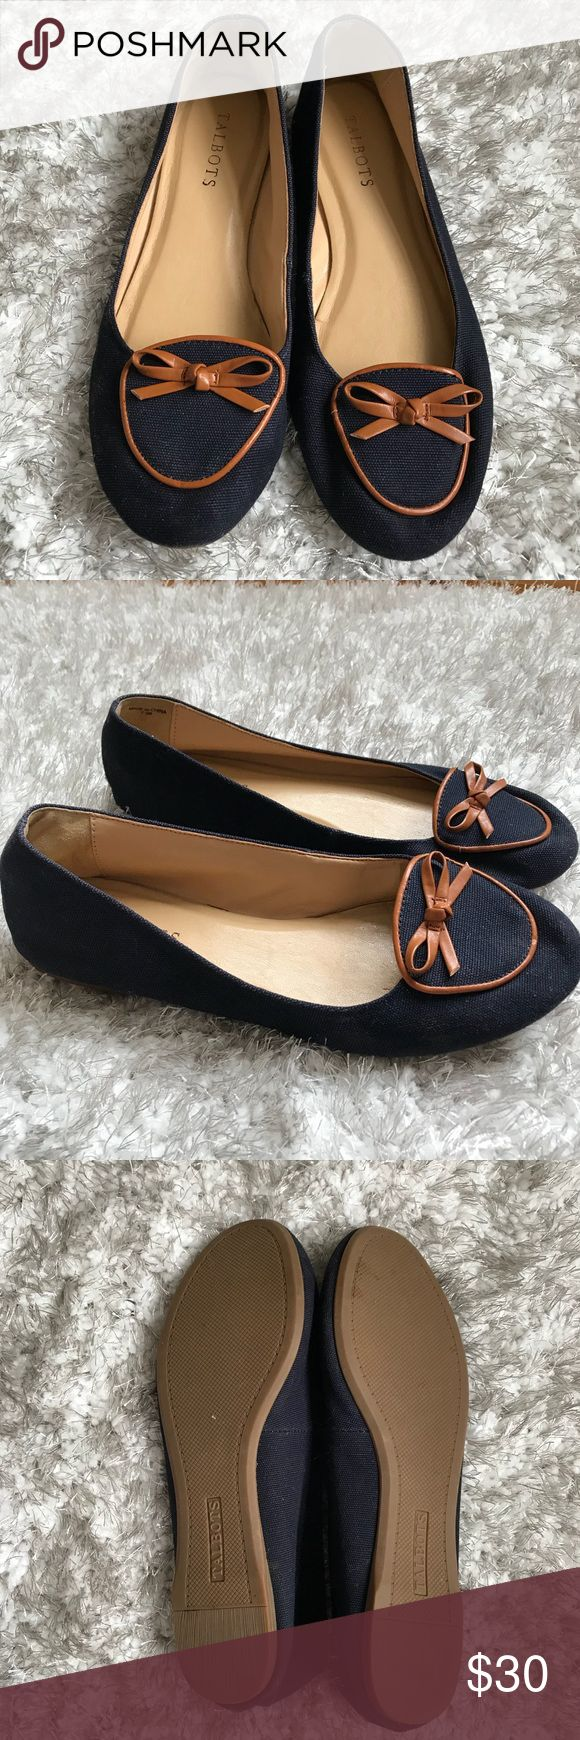 Talbots Navy Blue Flats/Loafers Size 7.5 Brown Bow Talbots Navy Blue Flats/Loafers Size 7.5 Brown Bow. EUC, barely worn. So cute and comfortable. Perfect career shoes for the office. Talbots Shoes Flats & Loafers